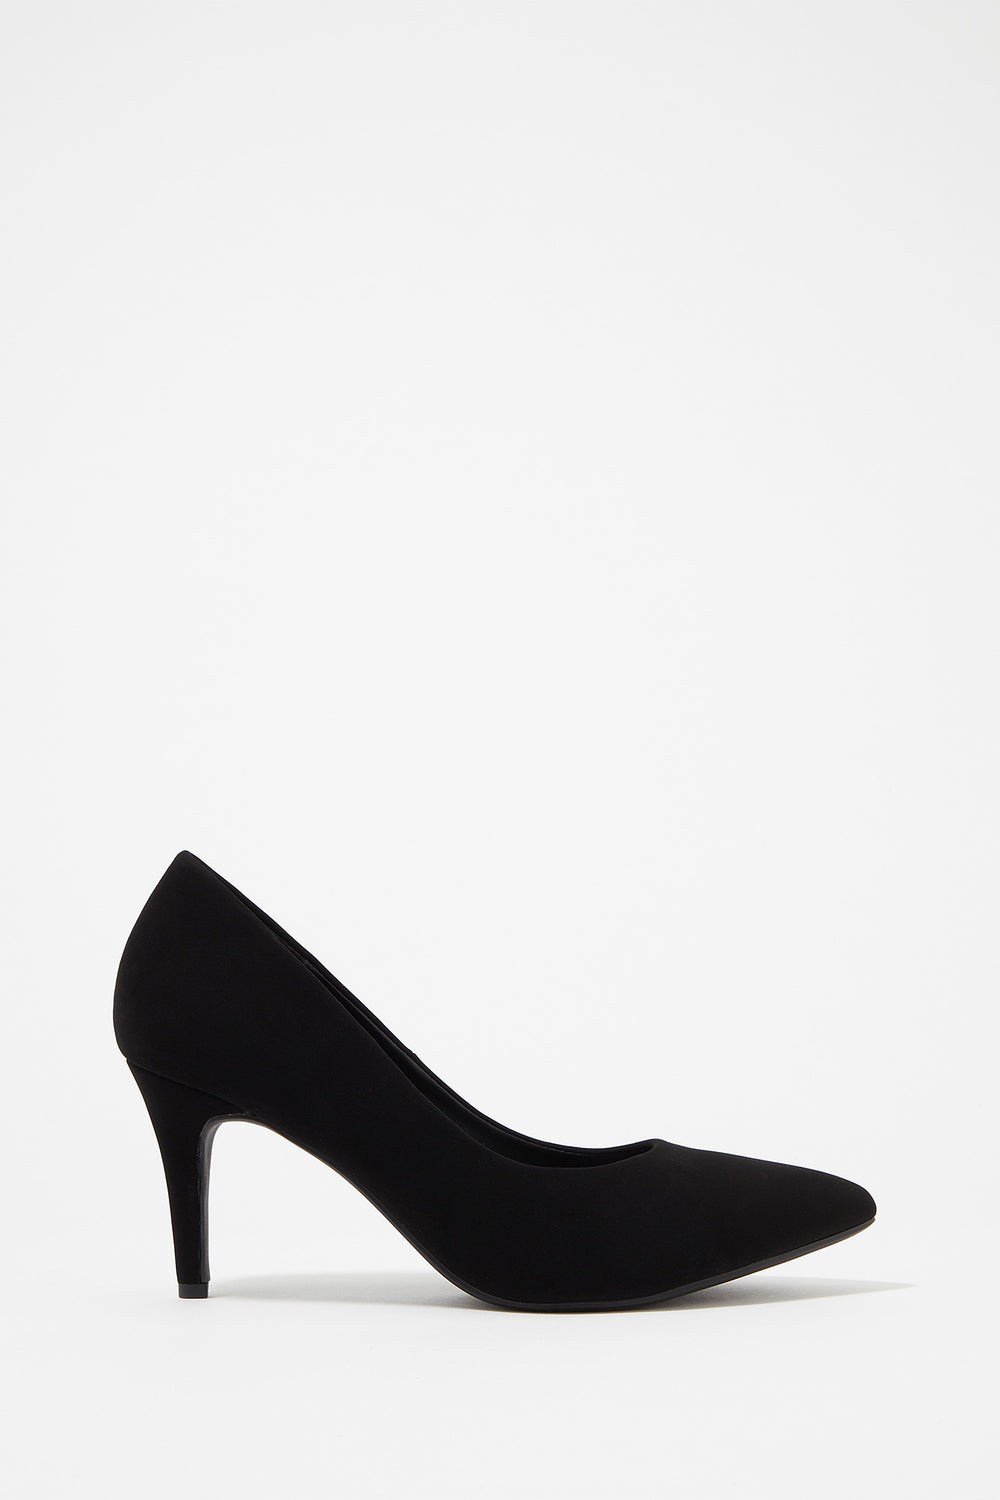 Pointed Toe Pump Heel Black